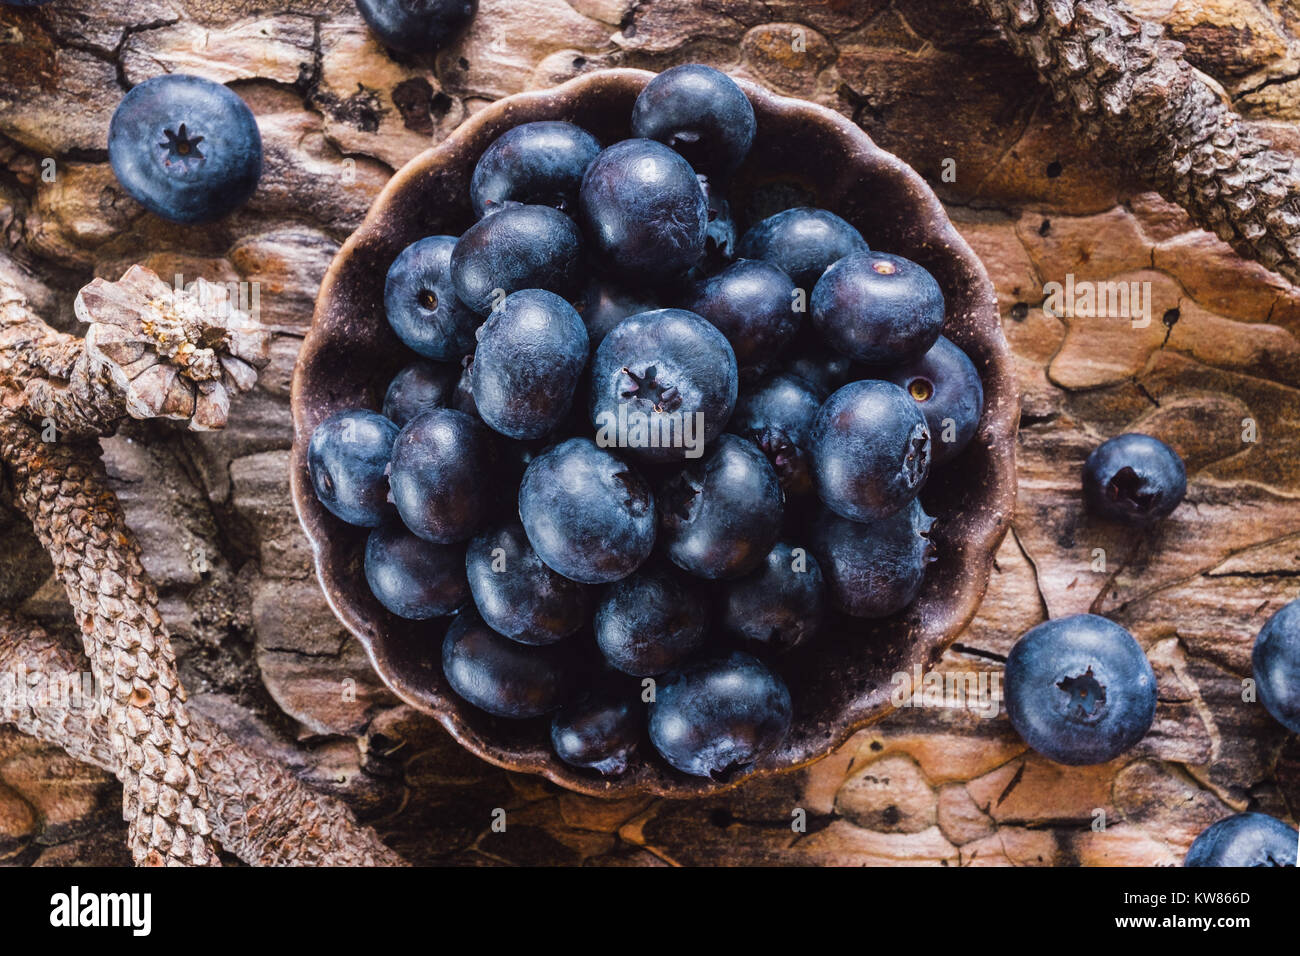 Blueberries on Natural Wood Surface - Stock Image